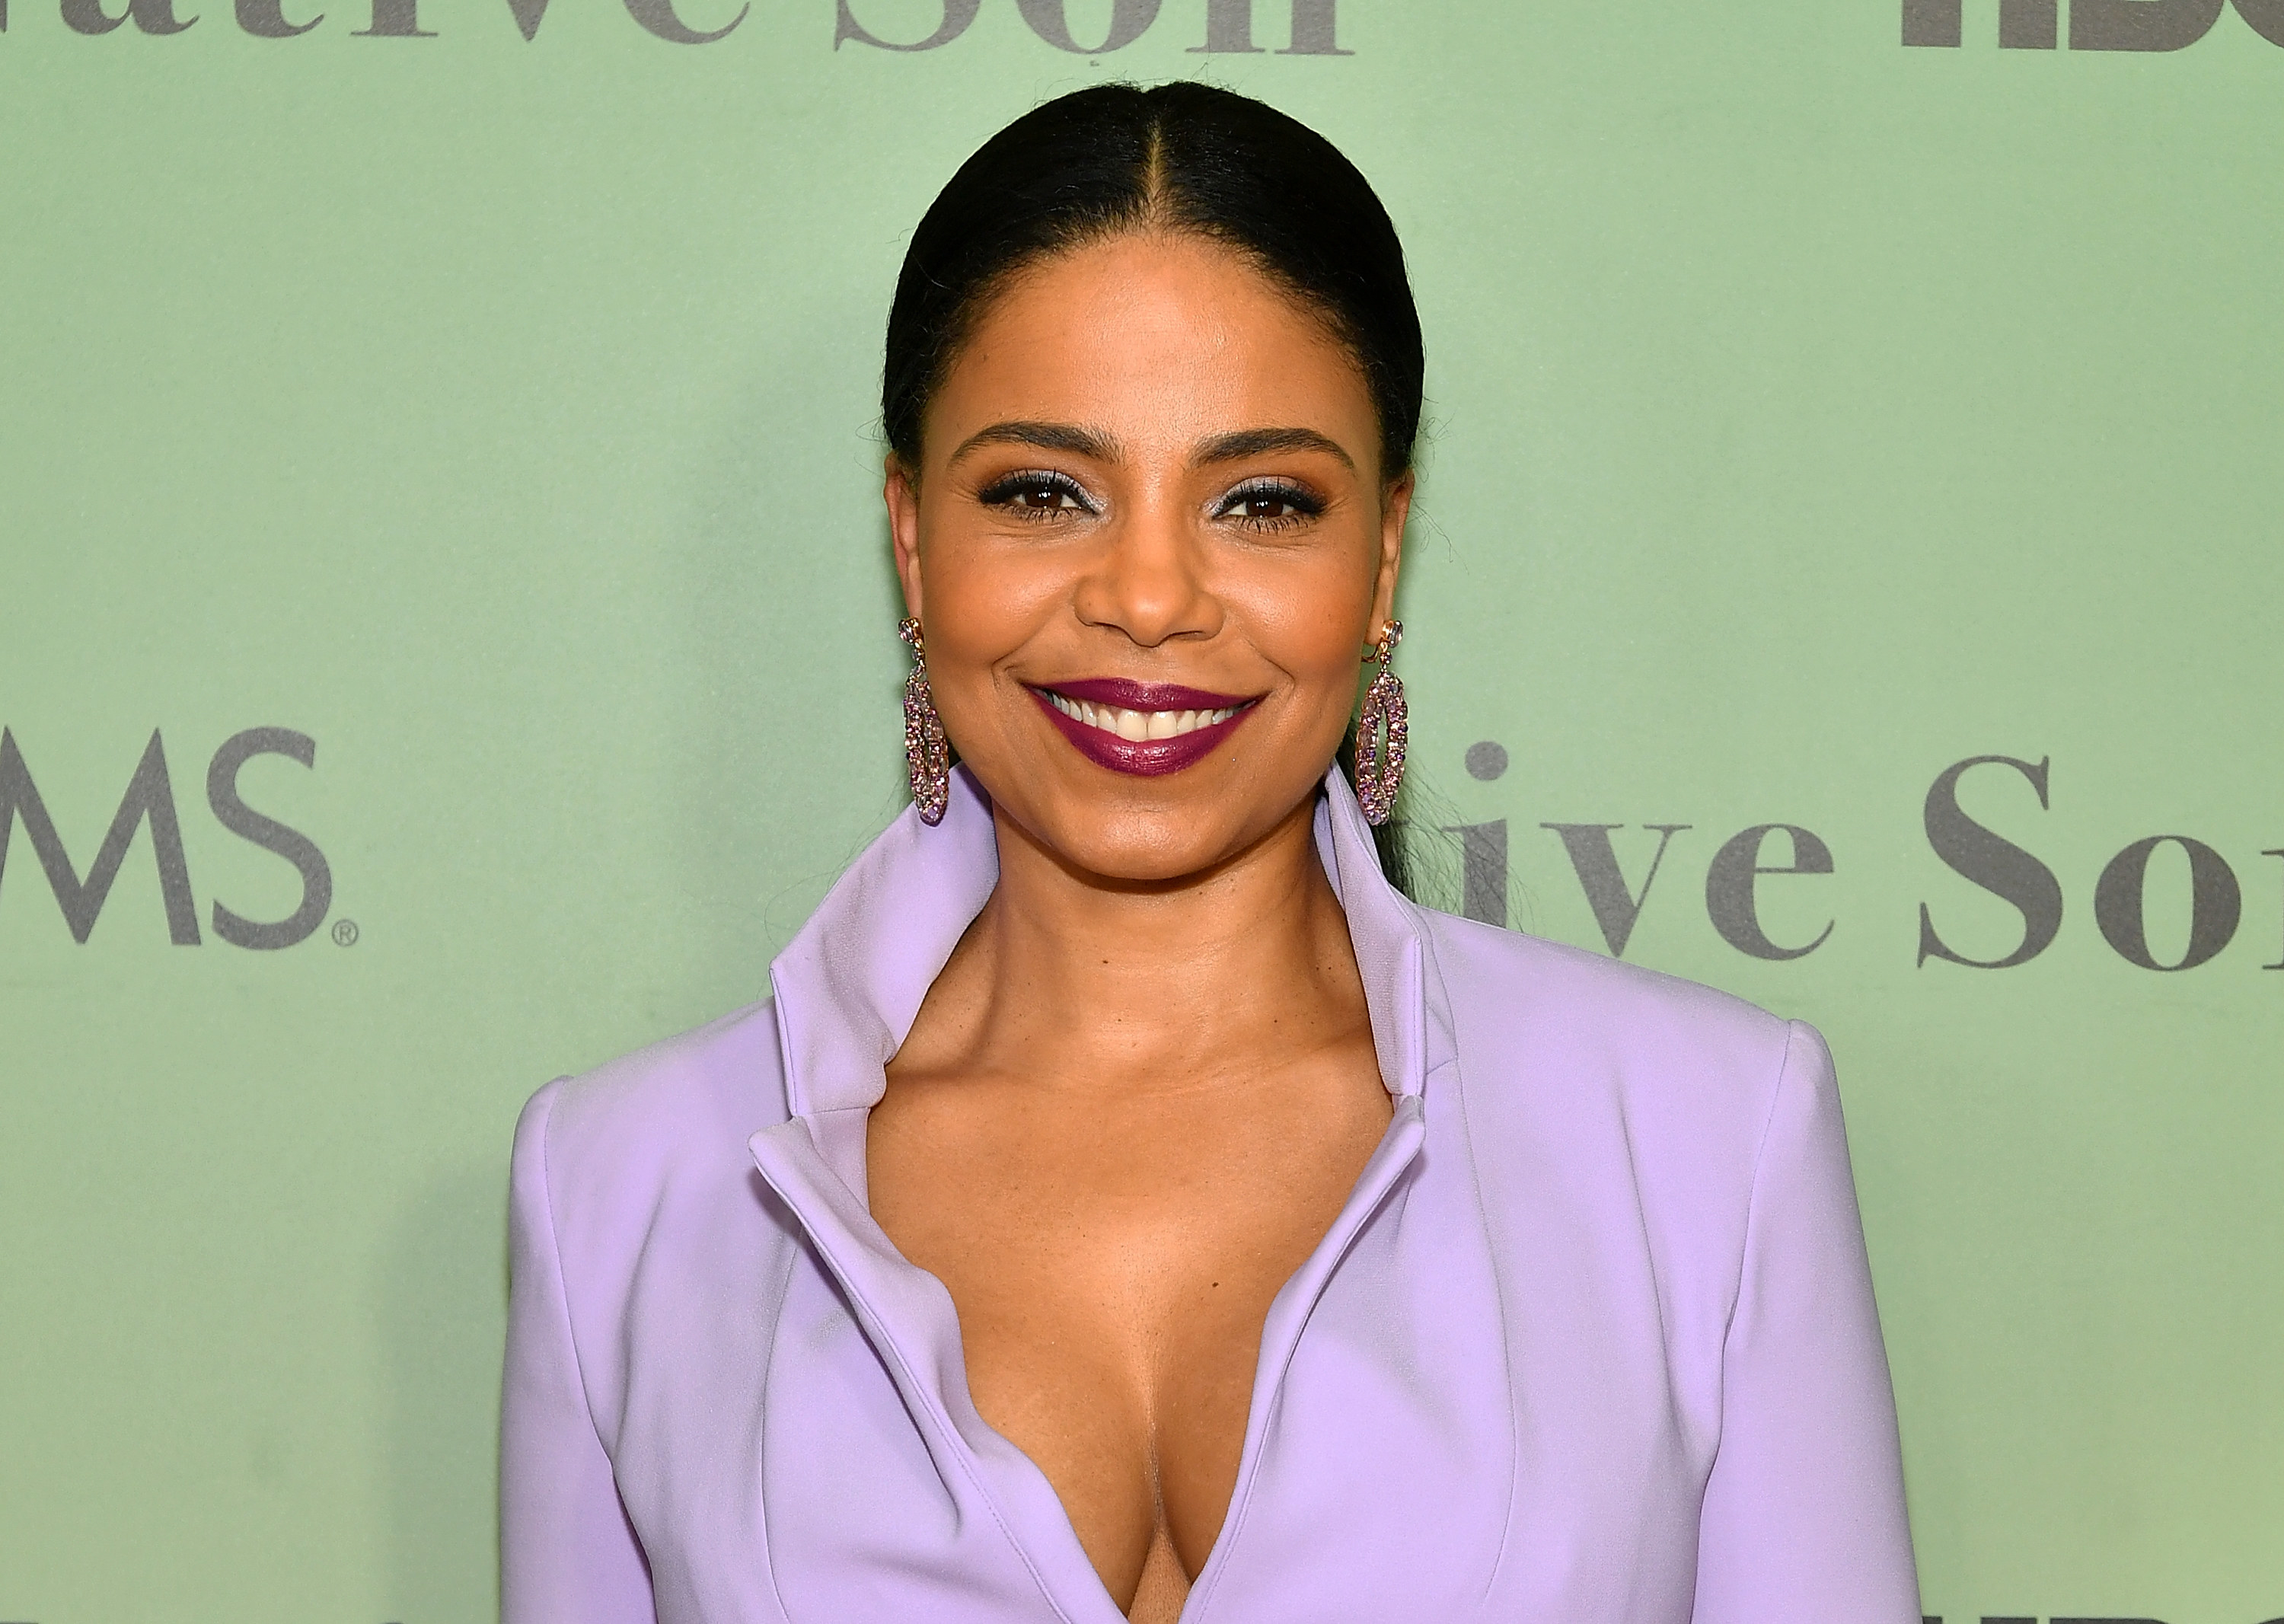 Sanaa wears a lilac collared blazer dress with a plunging neckline